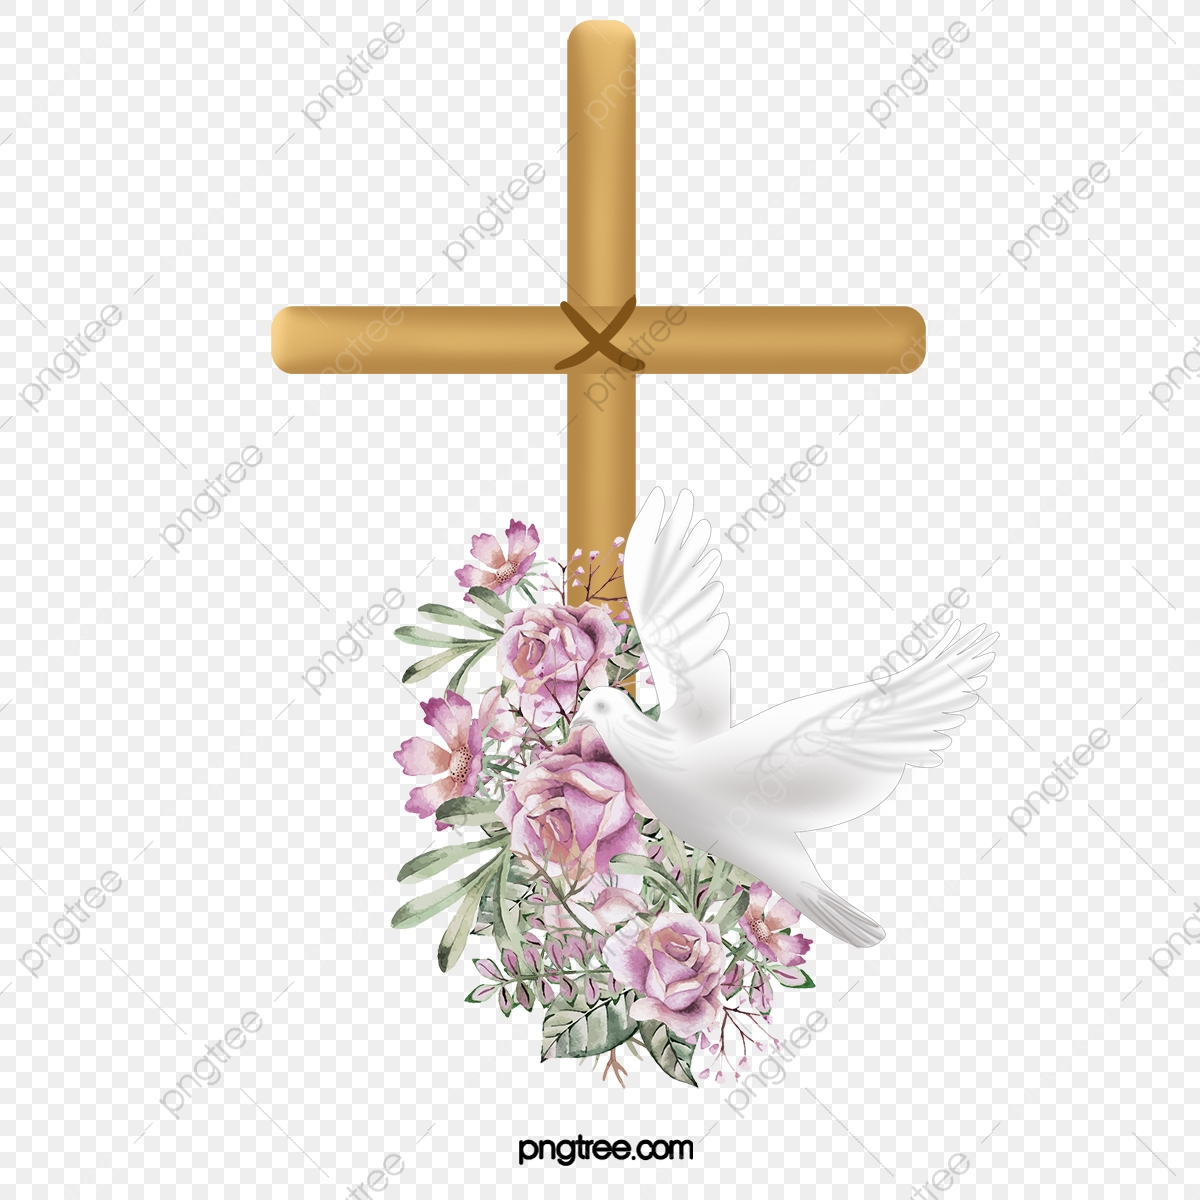 Peace Dove Flying In On The Cross, Cross Clipart, Fly, Peace Dove.